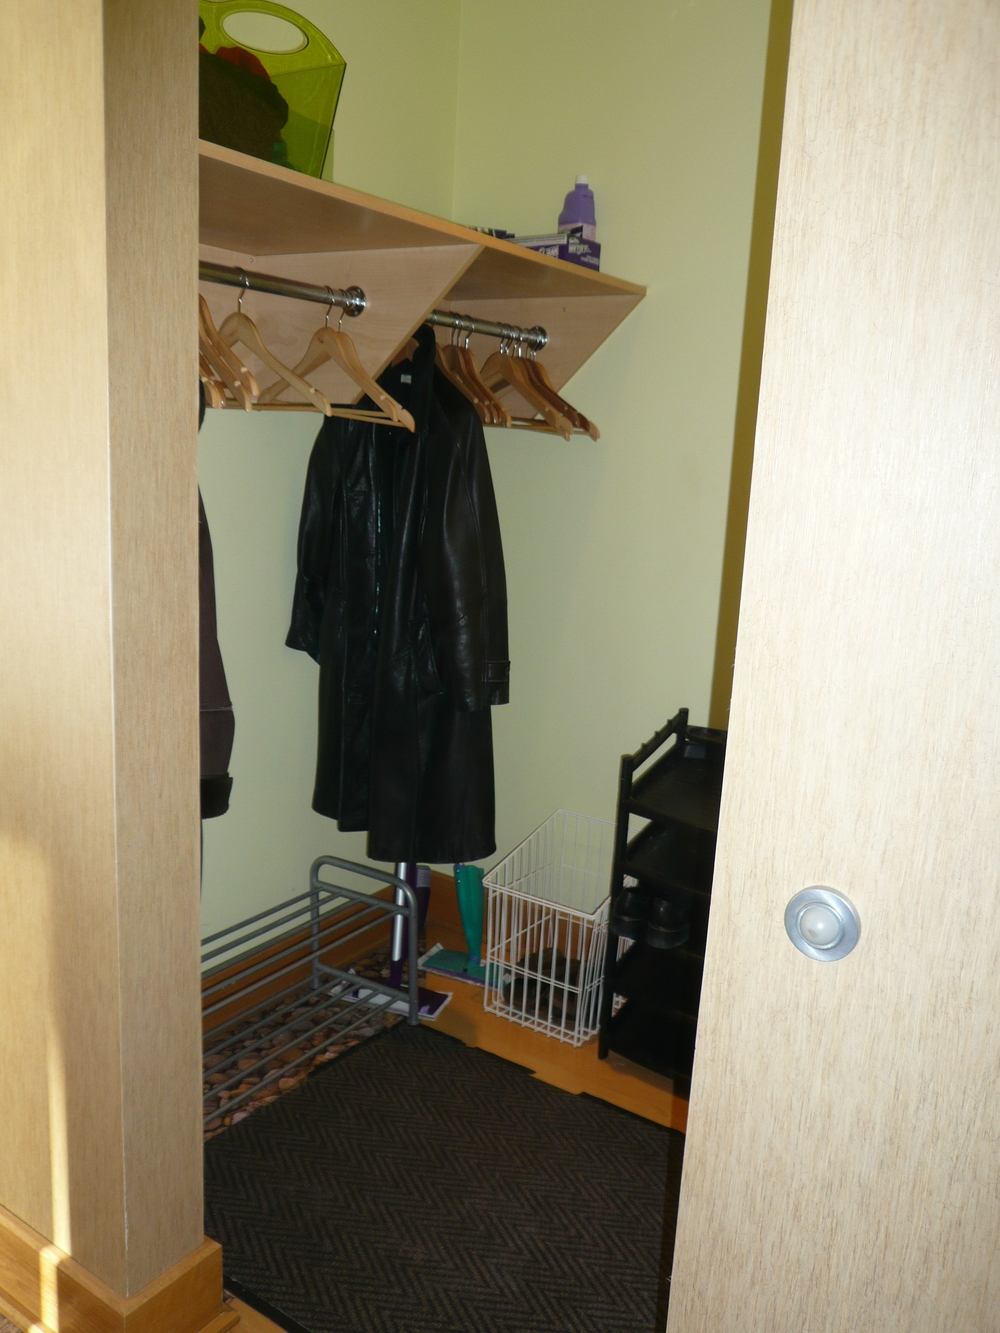 Sauna was created from a coat closet